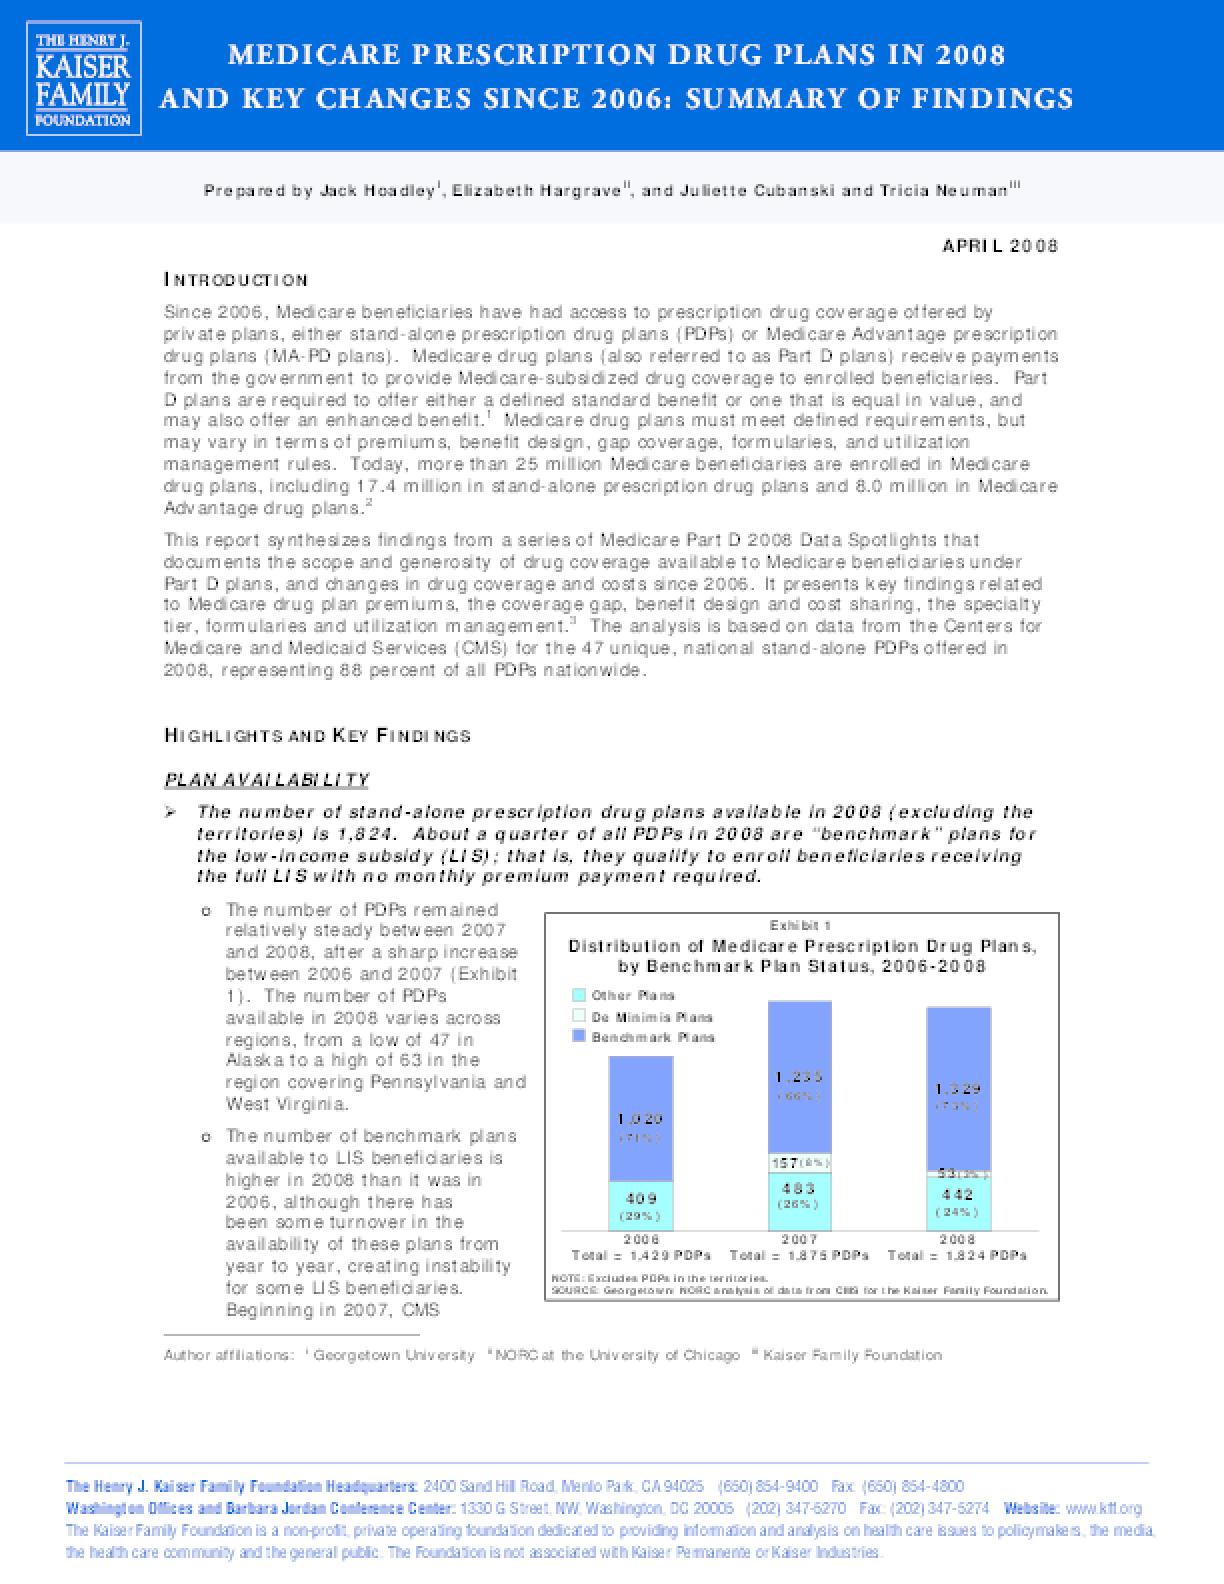 Medicare Prescription Drug Plans in 2008 and Key Changes Since 2006: Summary of Findings